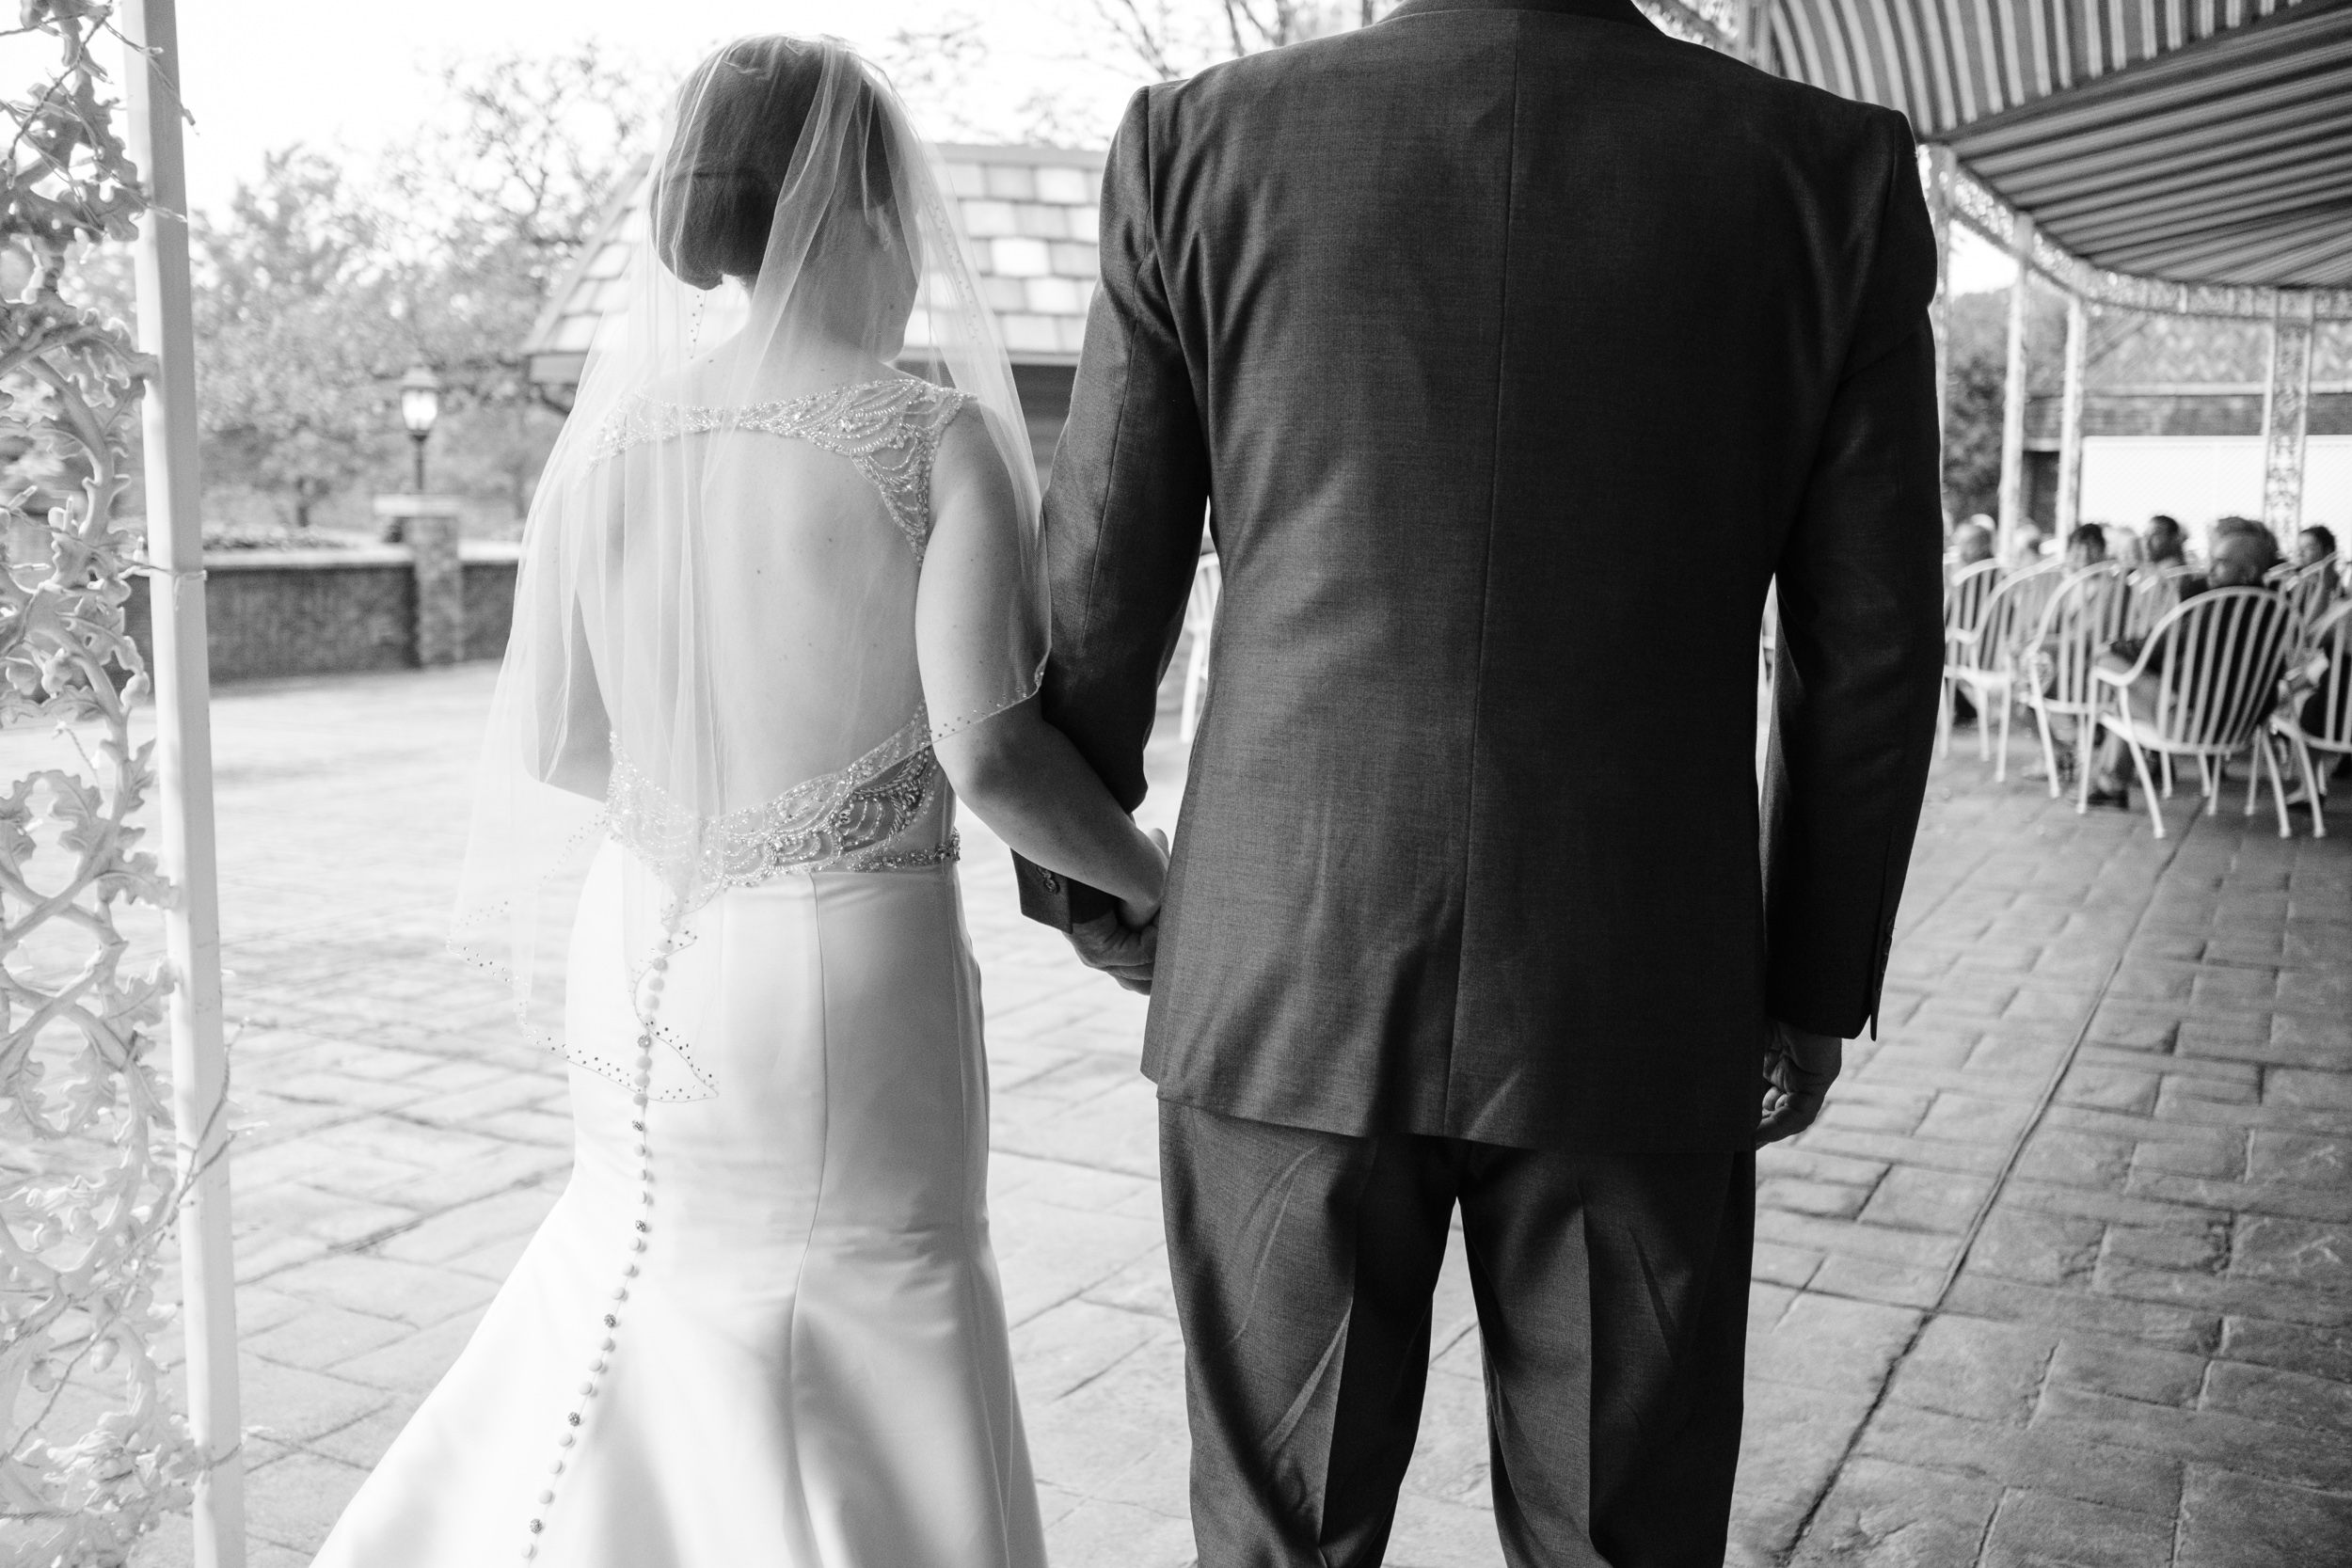 bride being walked down aisle by her father.